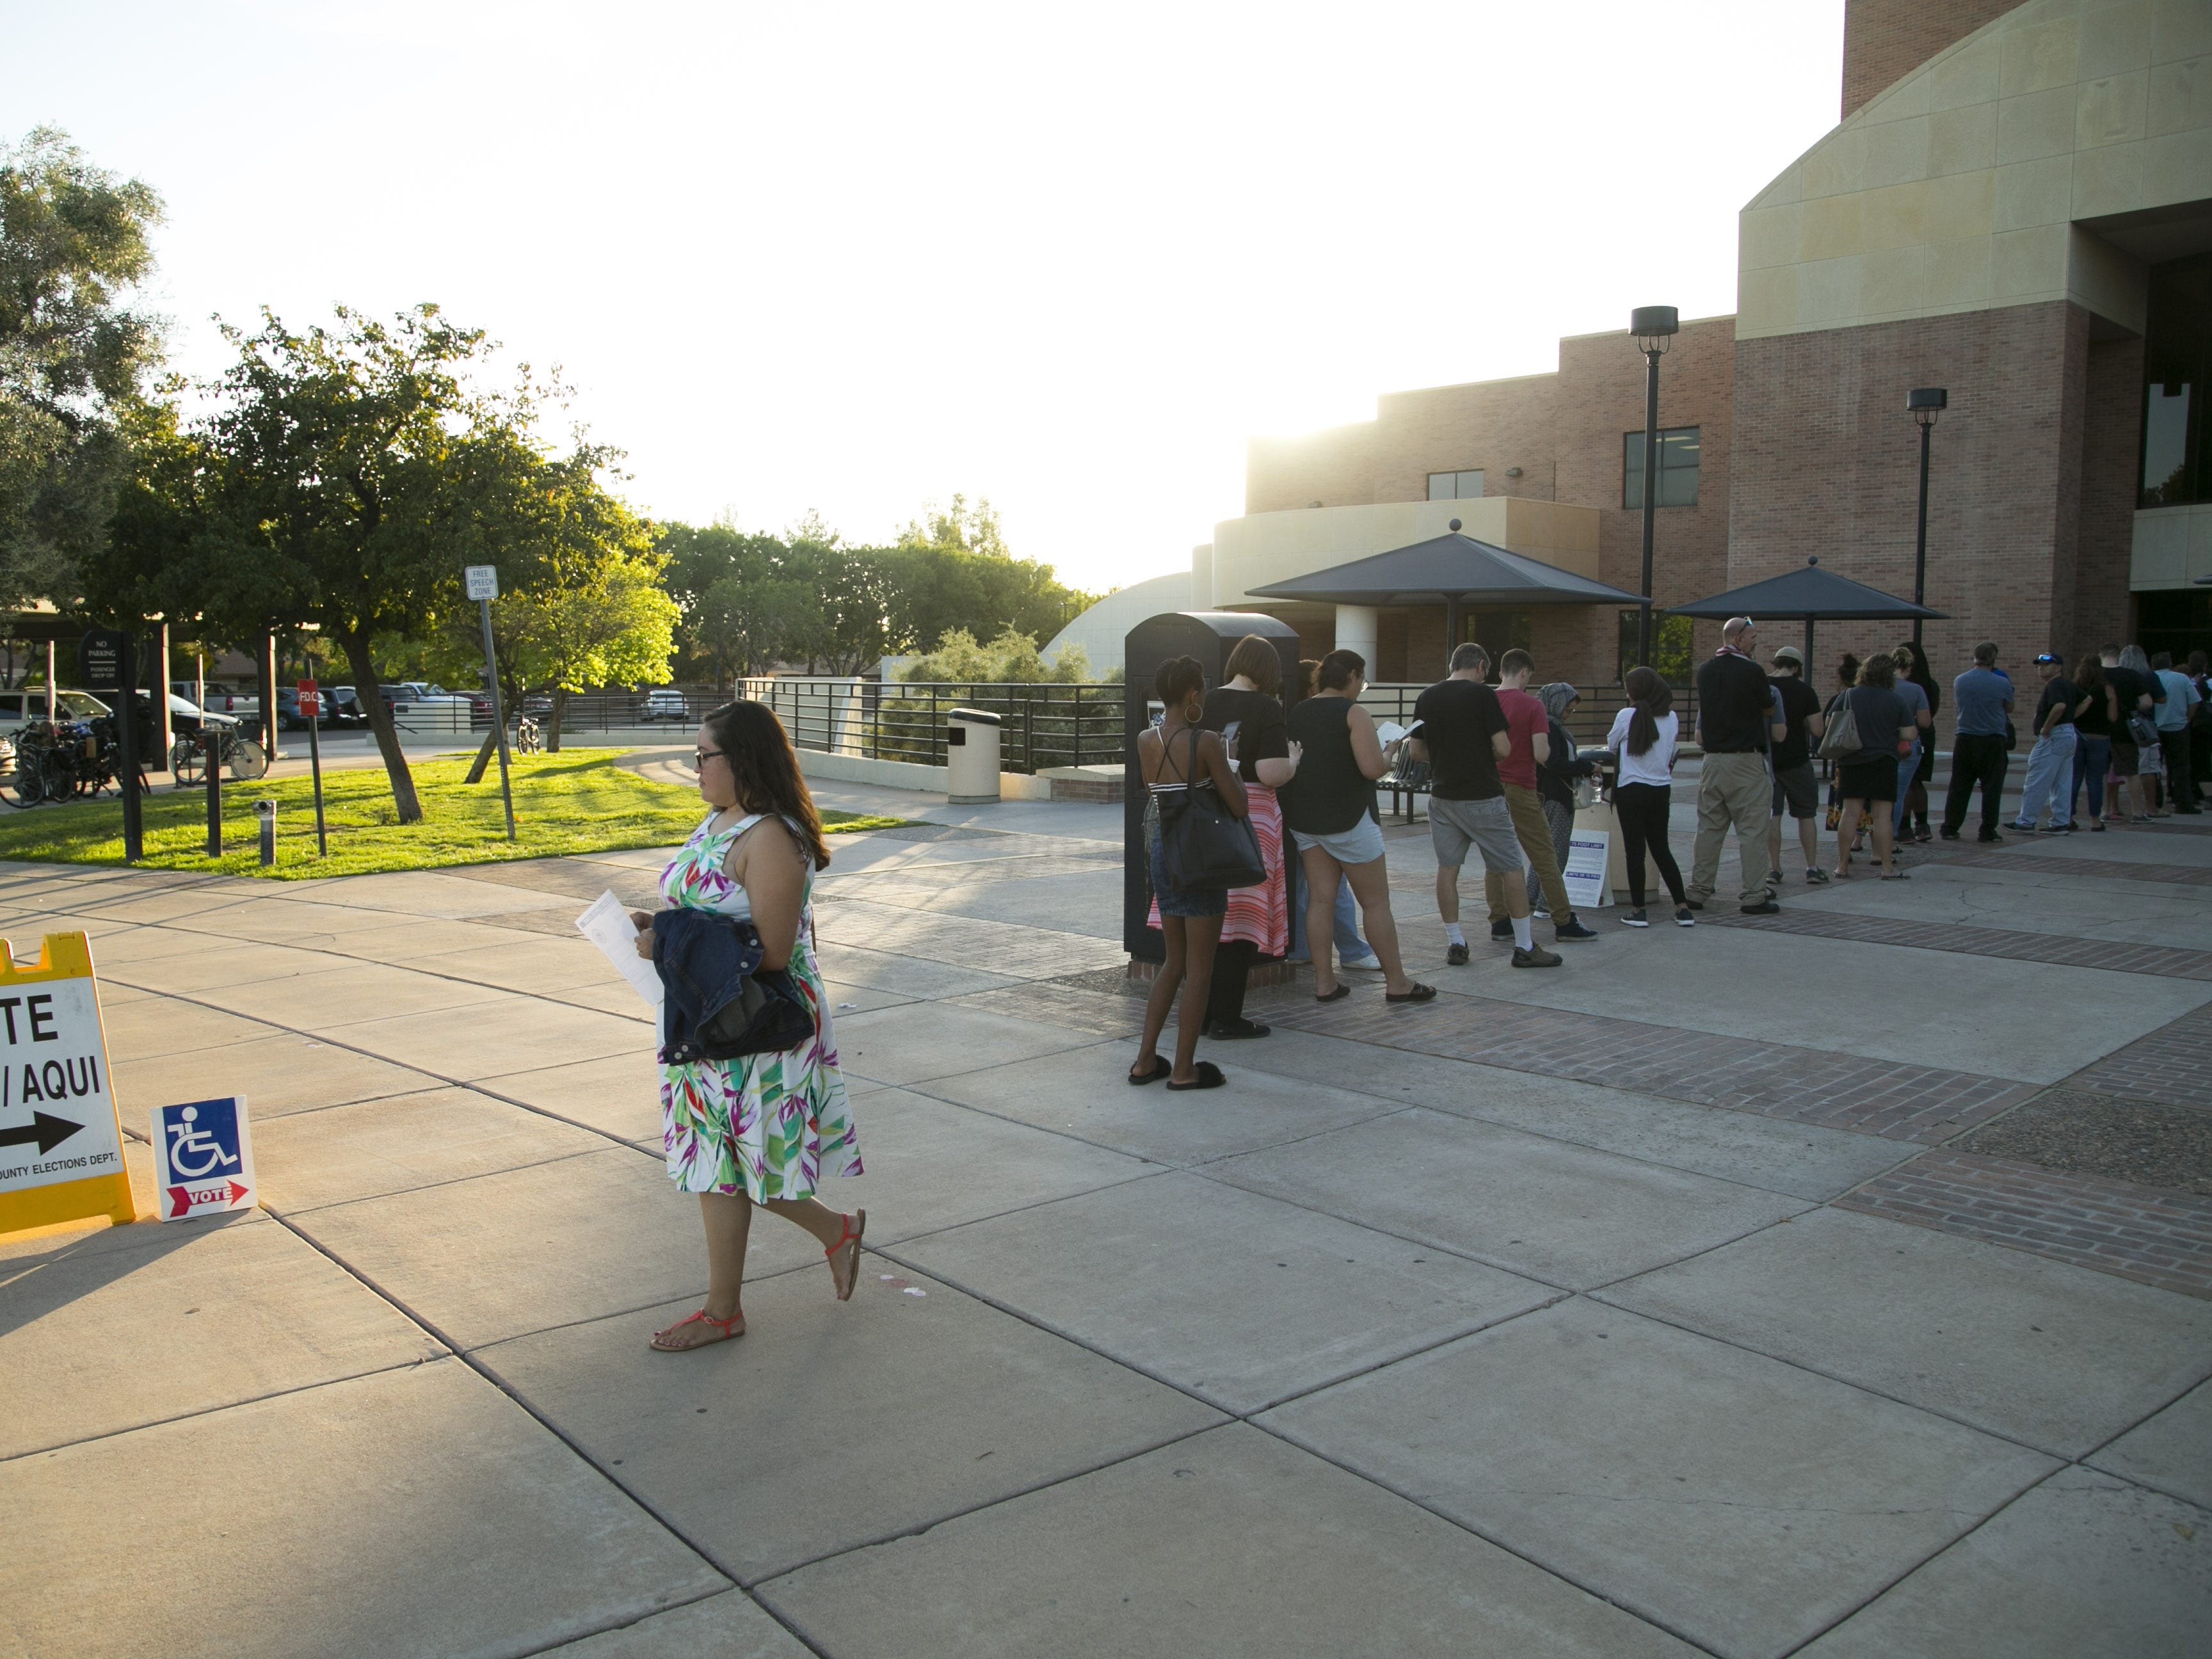 People wait in line to vote in the primary, at the polling place at the Tempe Public Library on Tuesday evening, Aug. 28, 2018. People leaving the polling place said they waited in line for an hour.